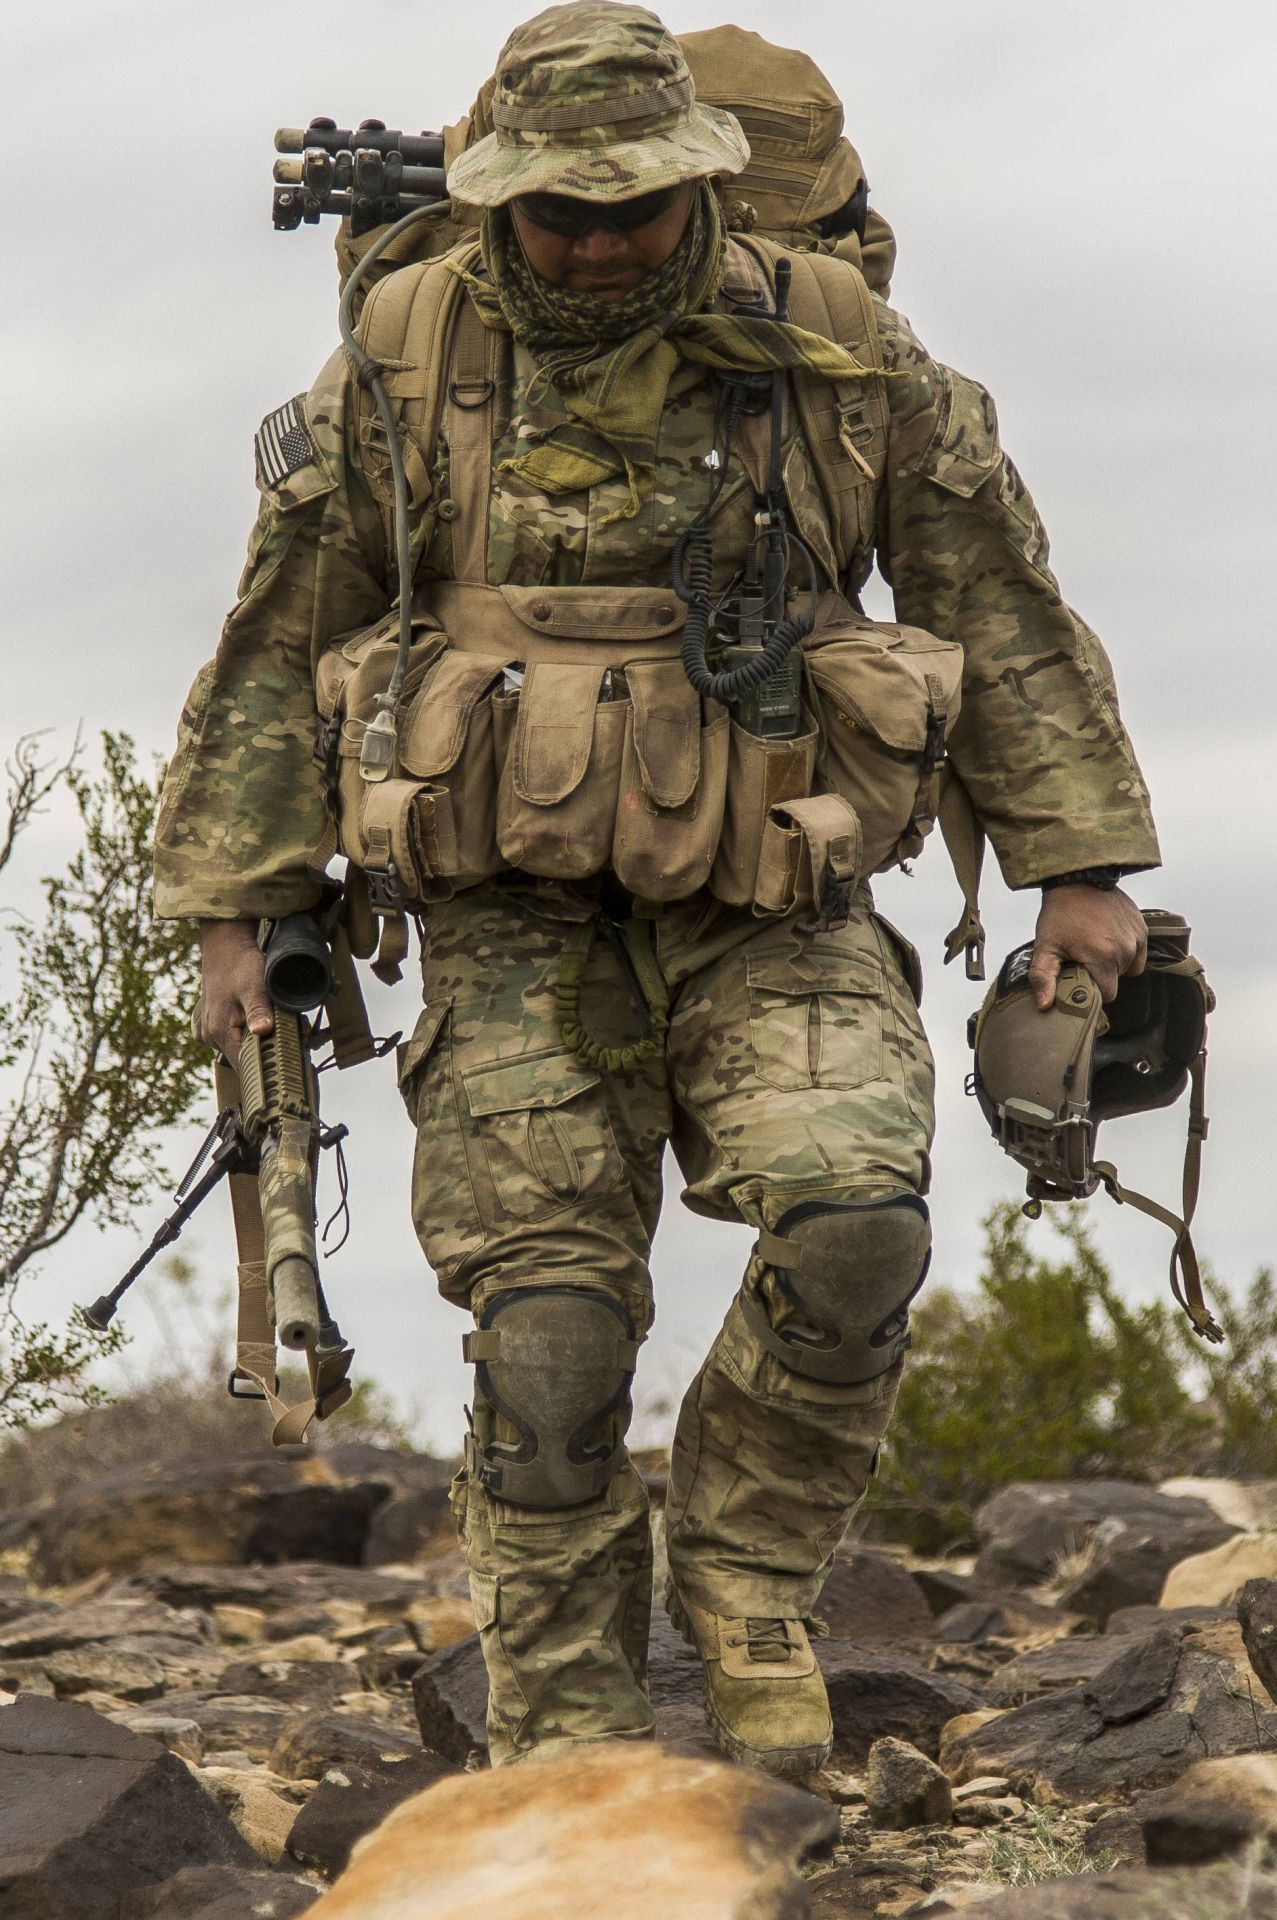 Military special forces gear - Us Army Special Forces Sniper Assigned To The 7th Special Forces Group Airborne